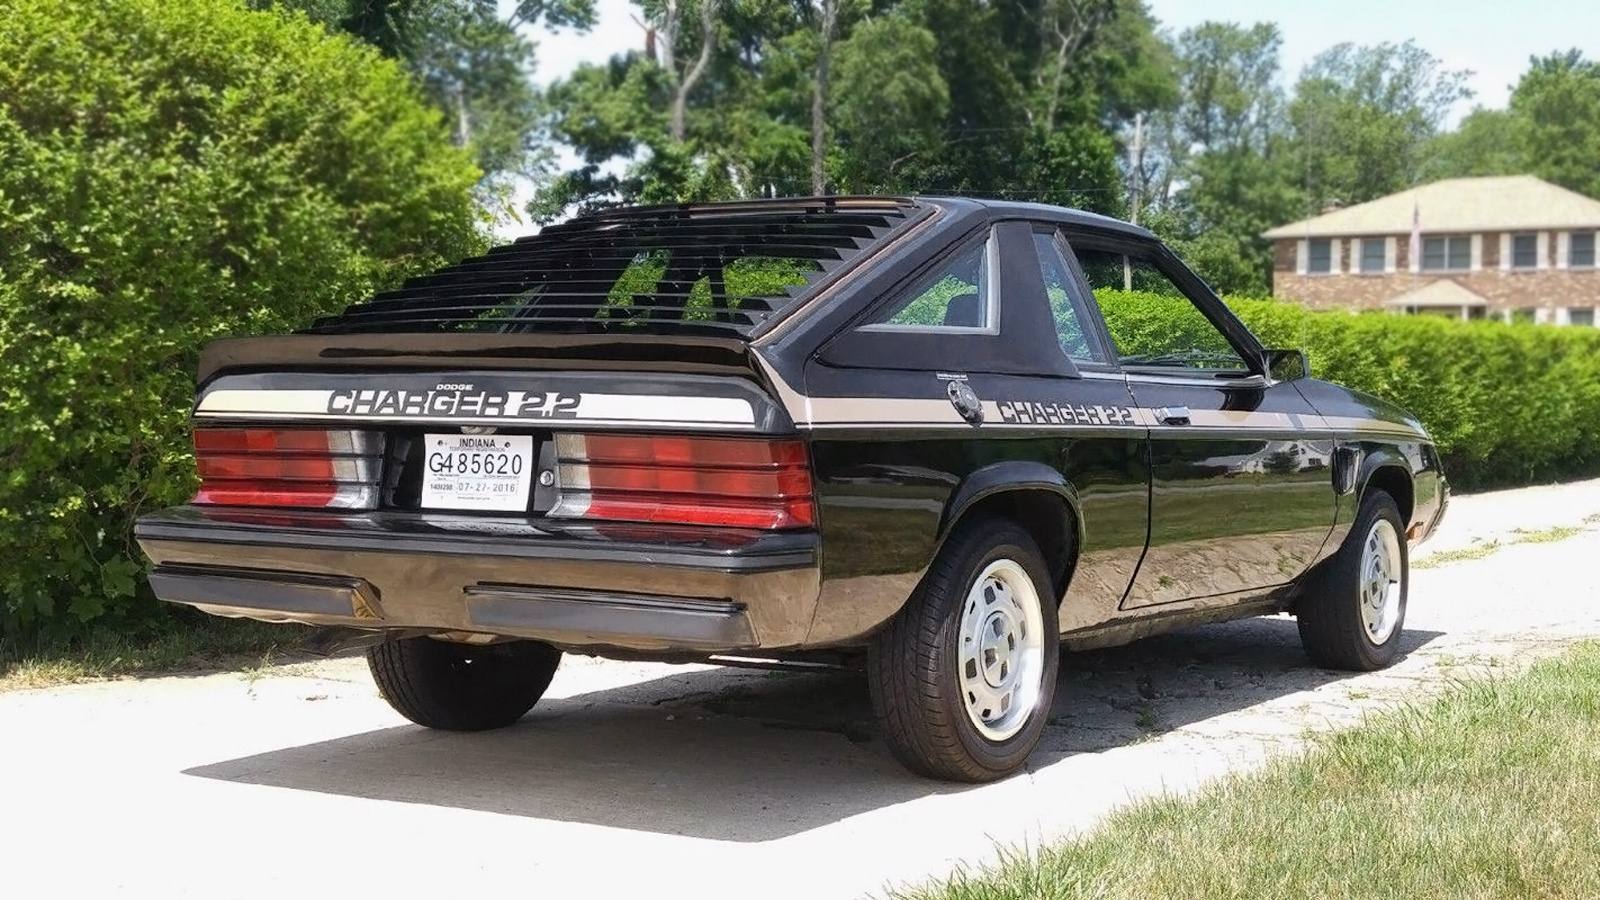 1985 Plymouth Turismo 1985 Plymouth Turismo For Sale In